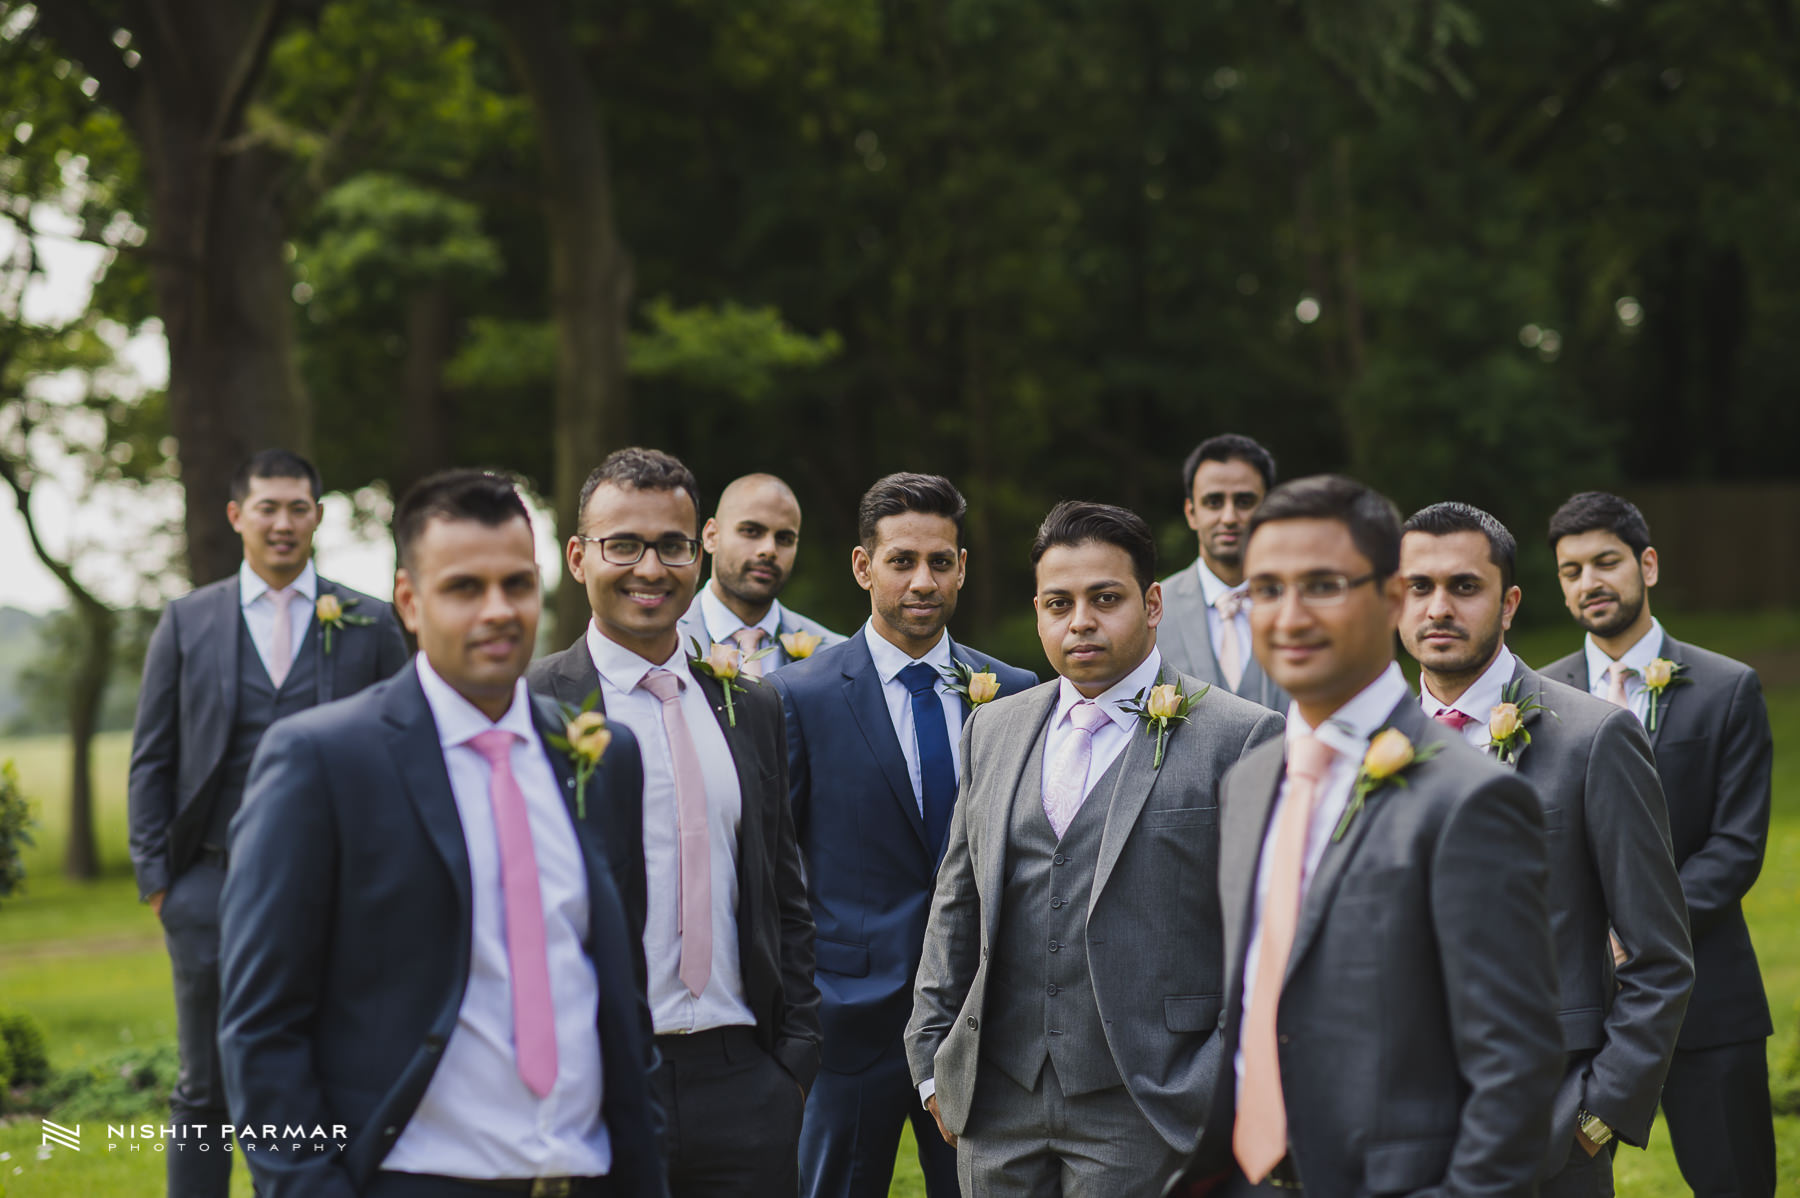 Civil Wedding Laura Ashley Manor Elstree London Wedding Photographer - groomsman portrait